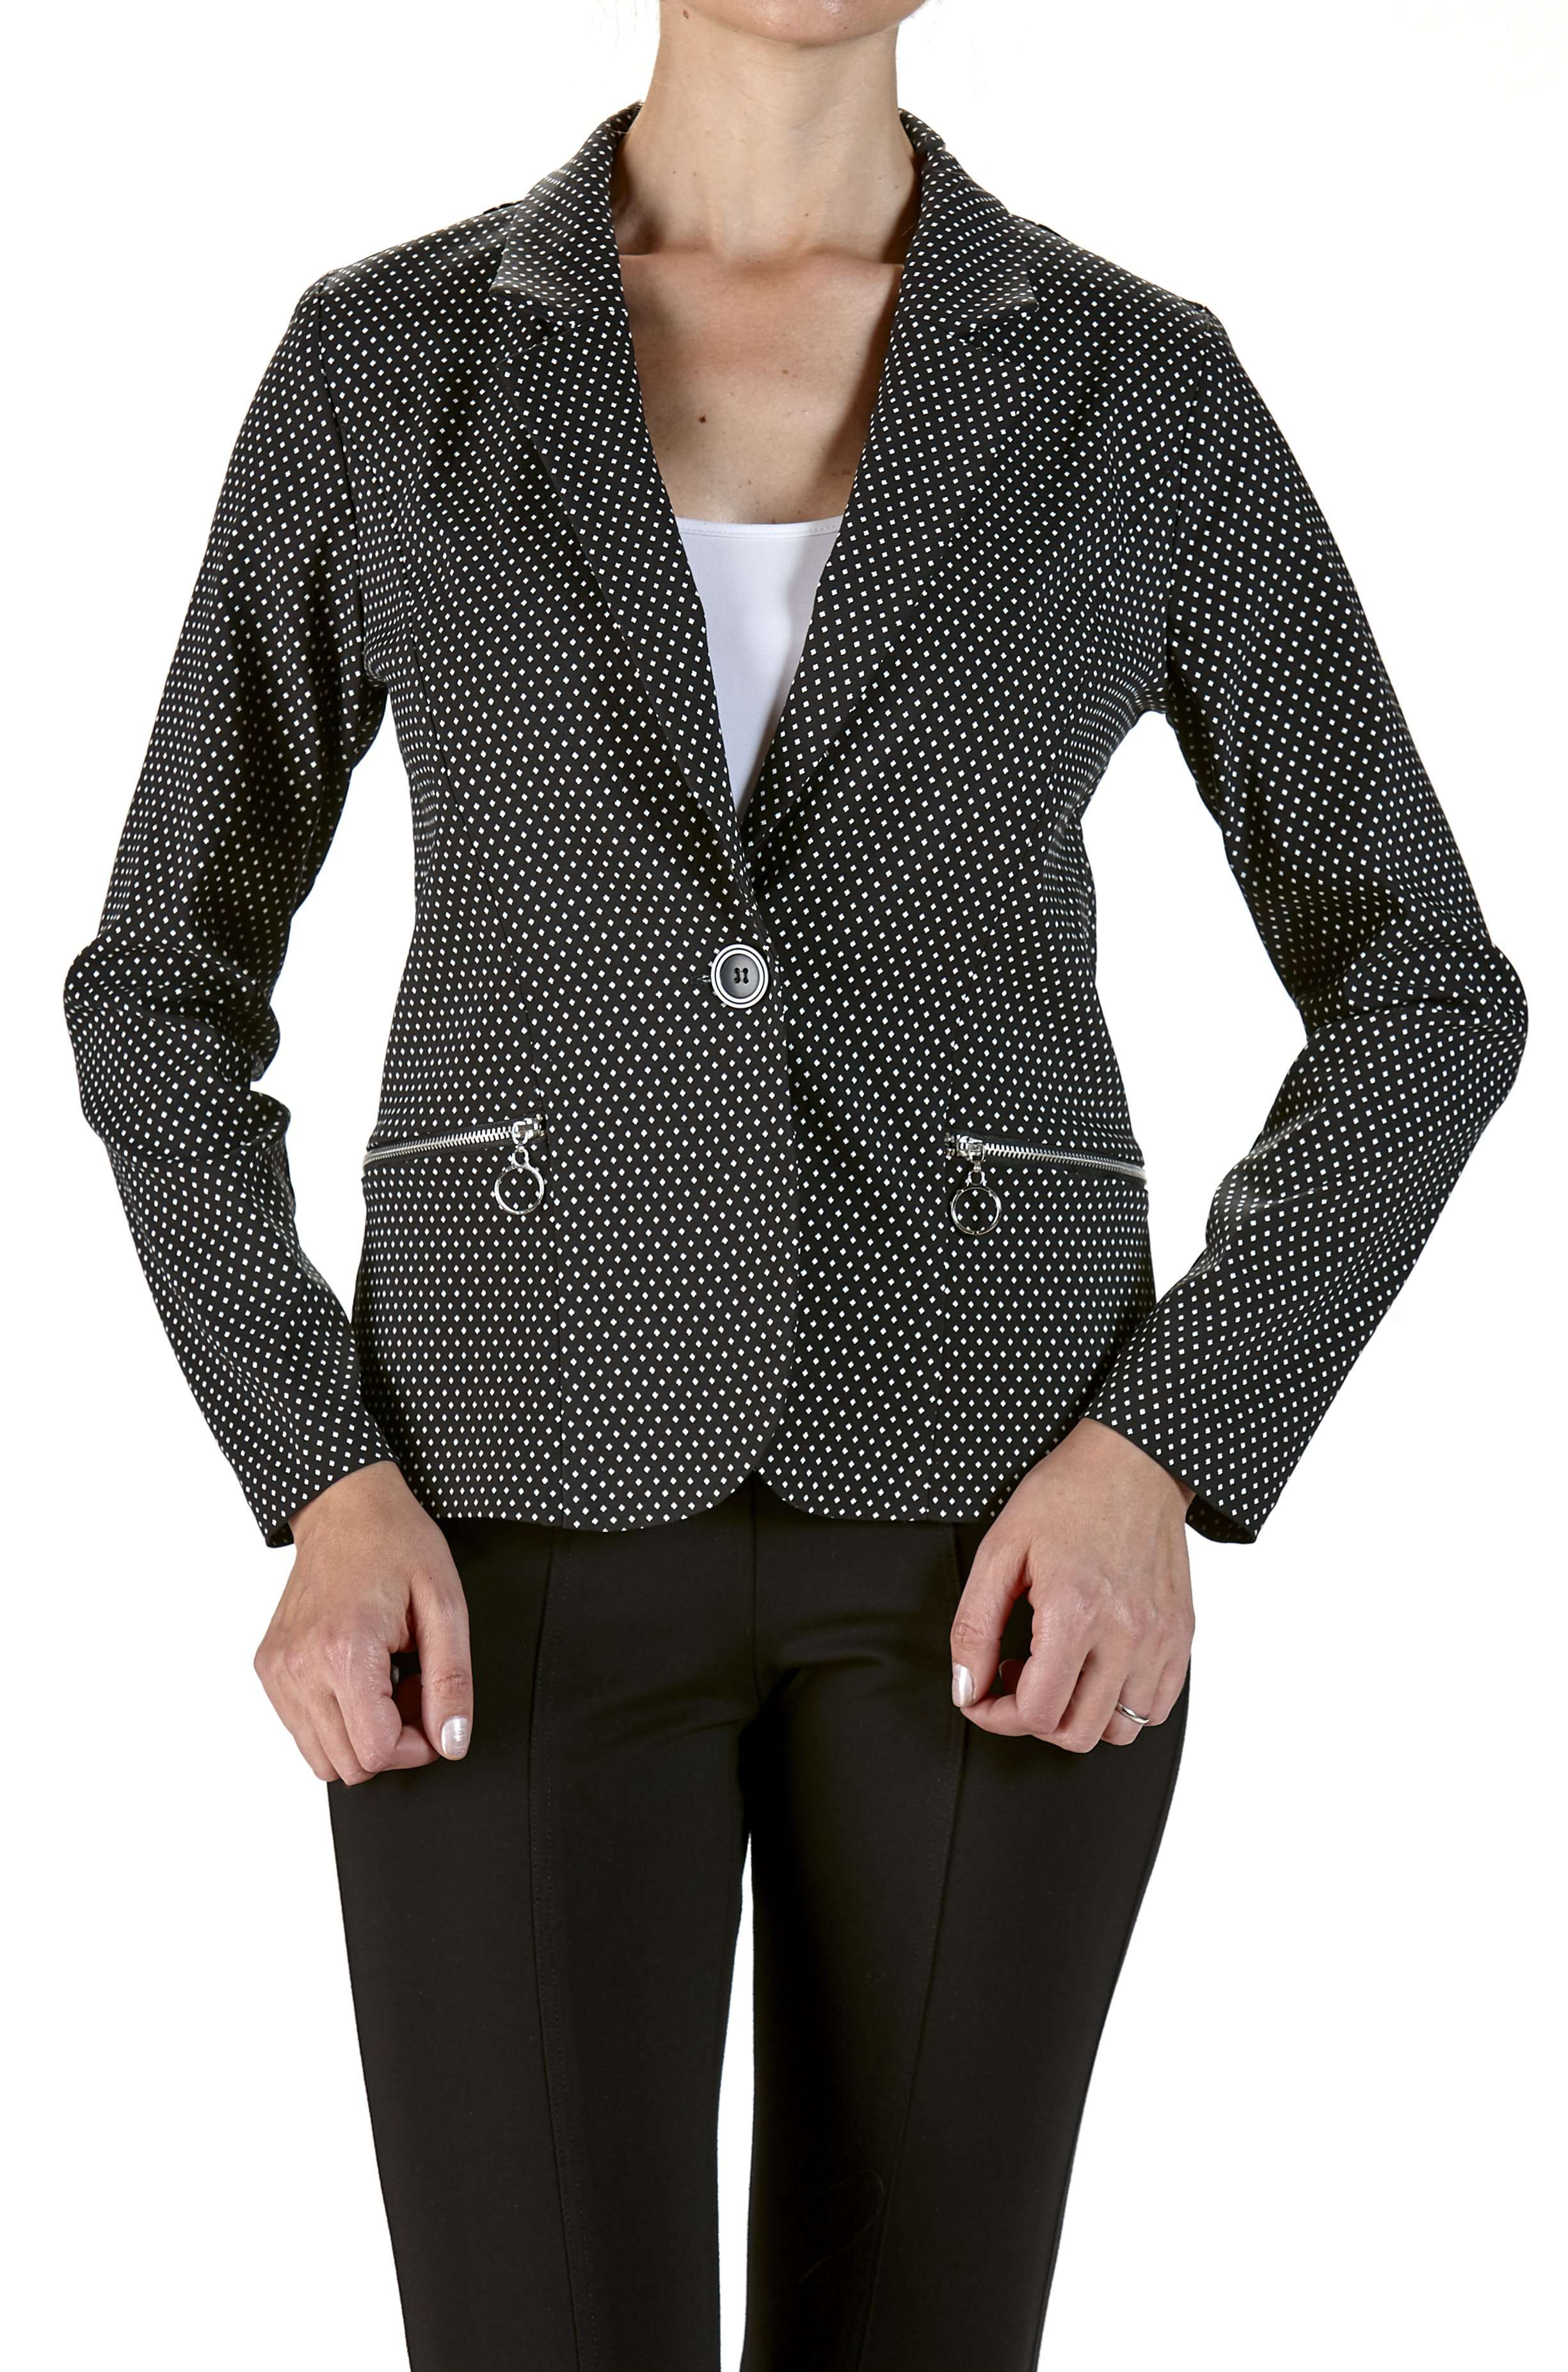 Women's Black Blazer with Dots Made in Canada - Yvonne Marie - Yvonne Marie